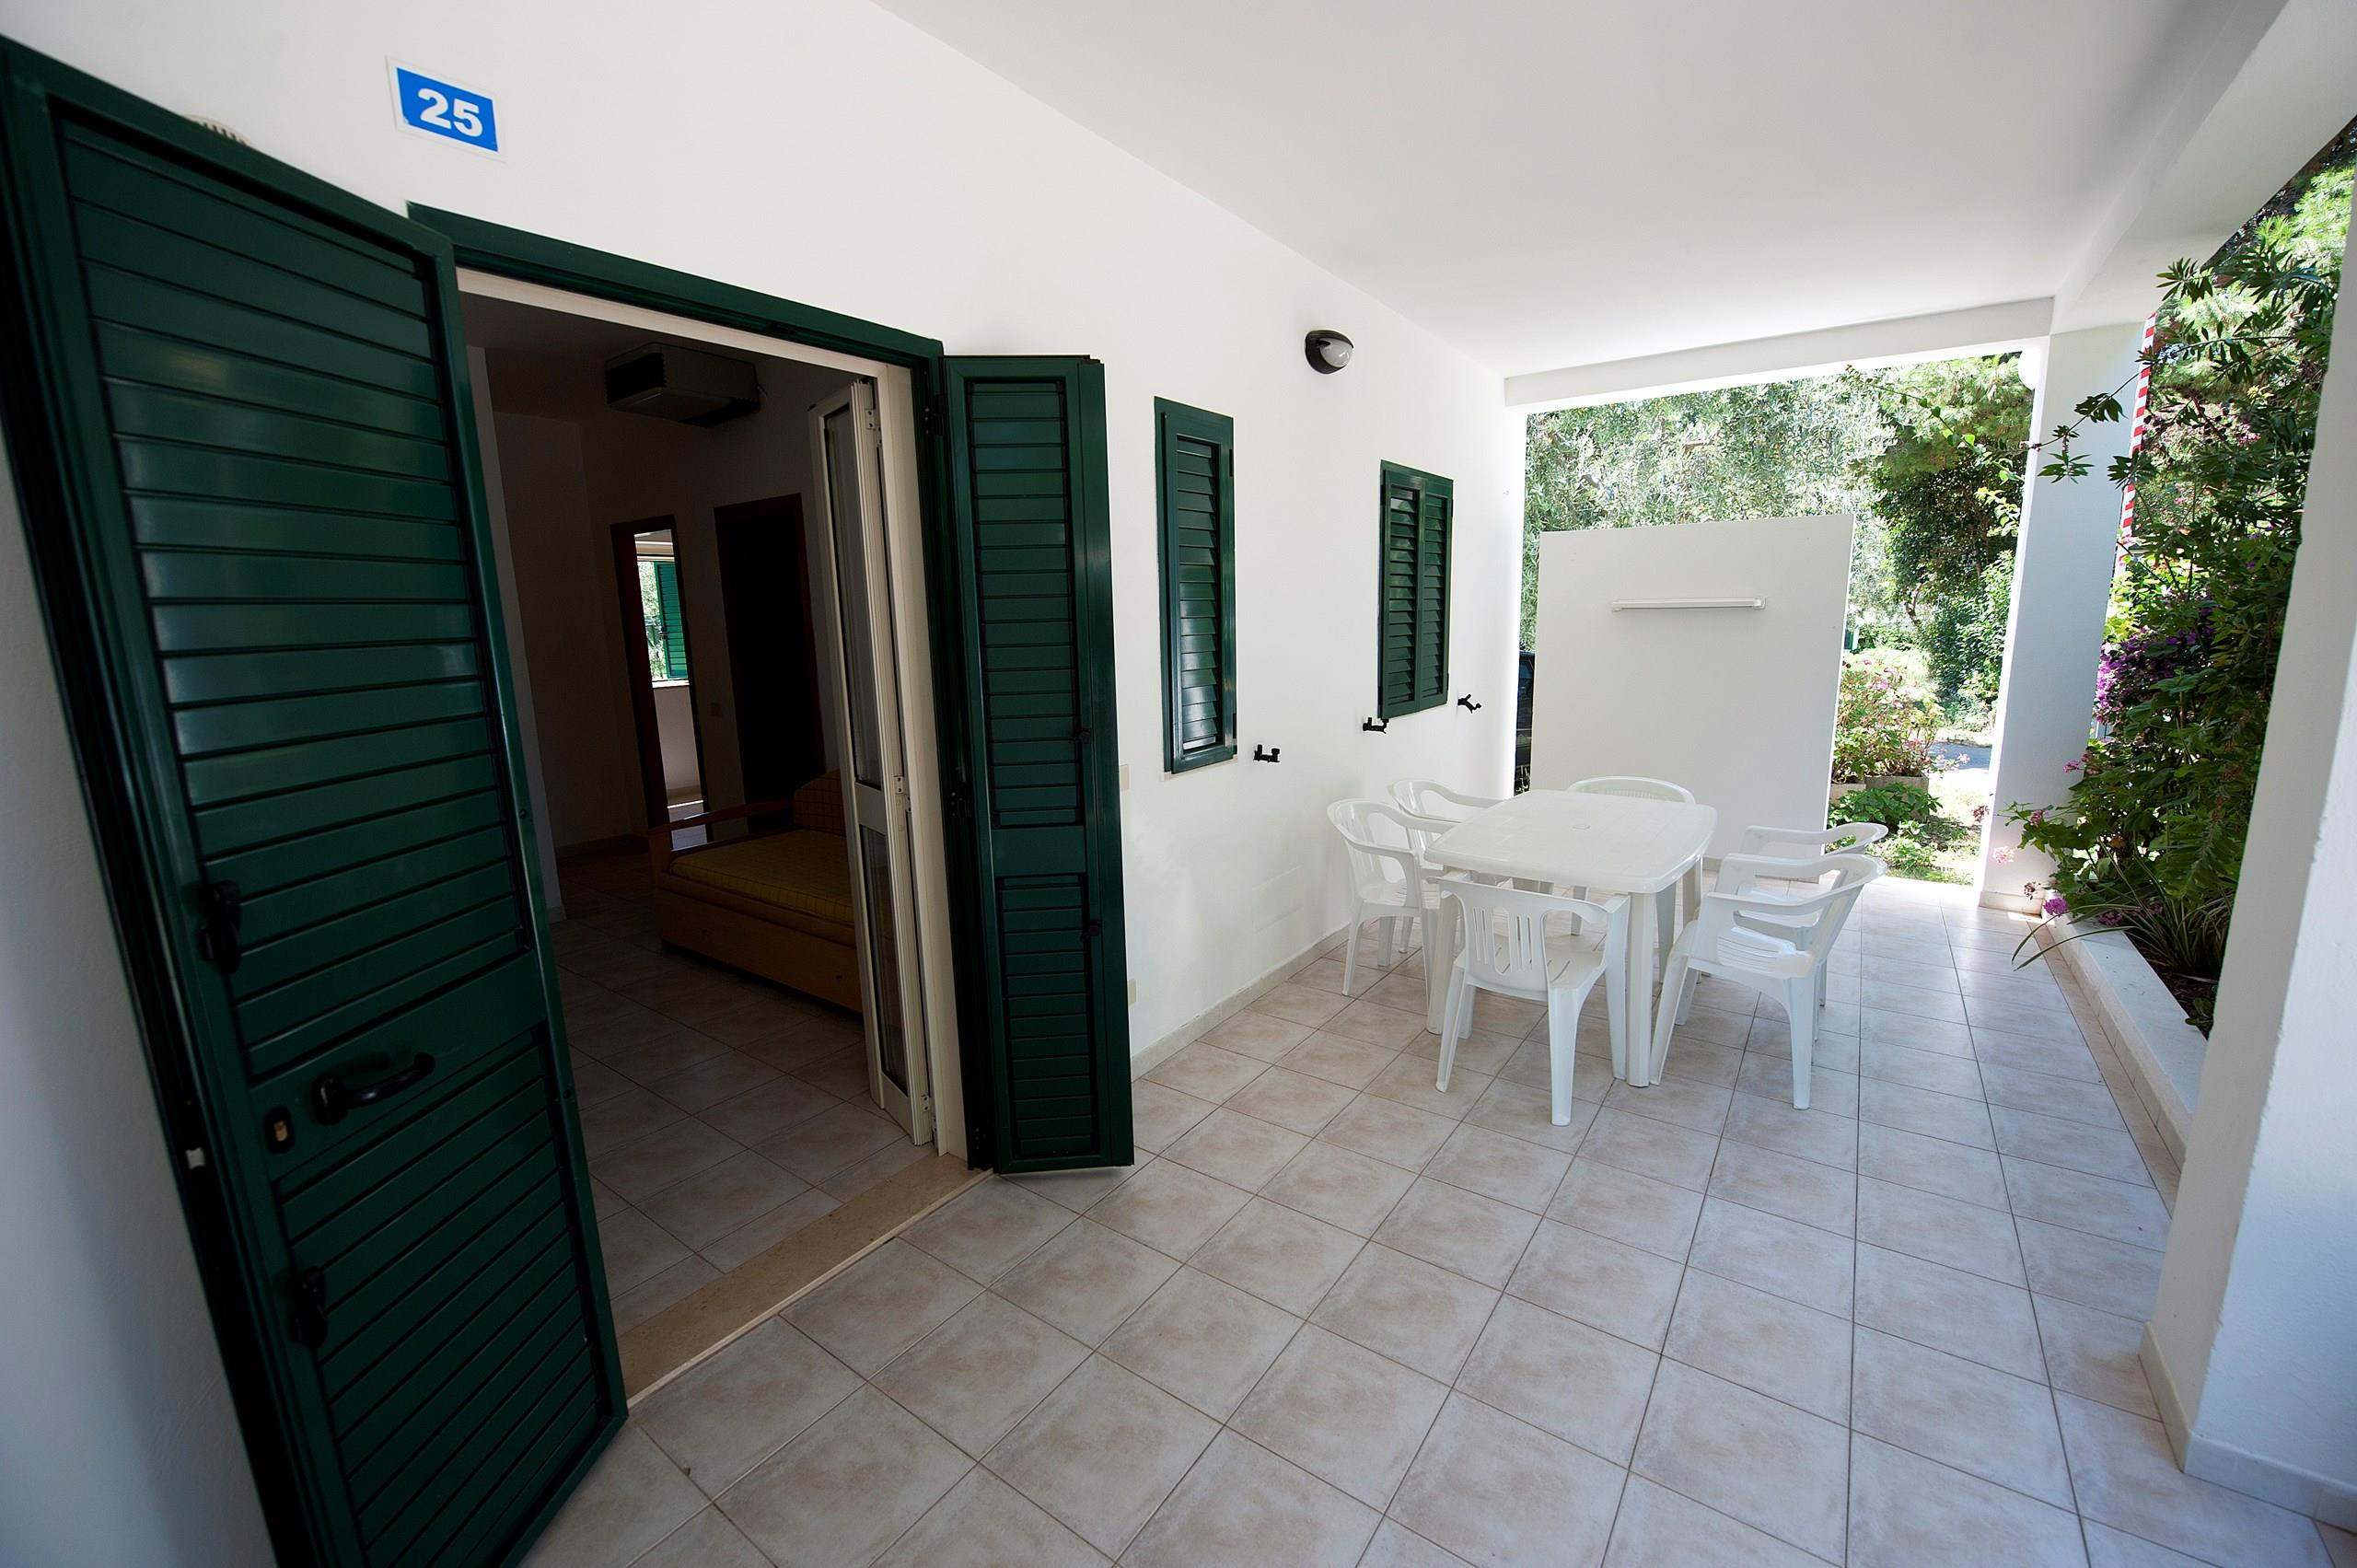 Location - Bungalow 'Giada' Trois Pièces - Camping Le Diomedee